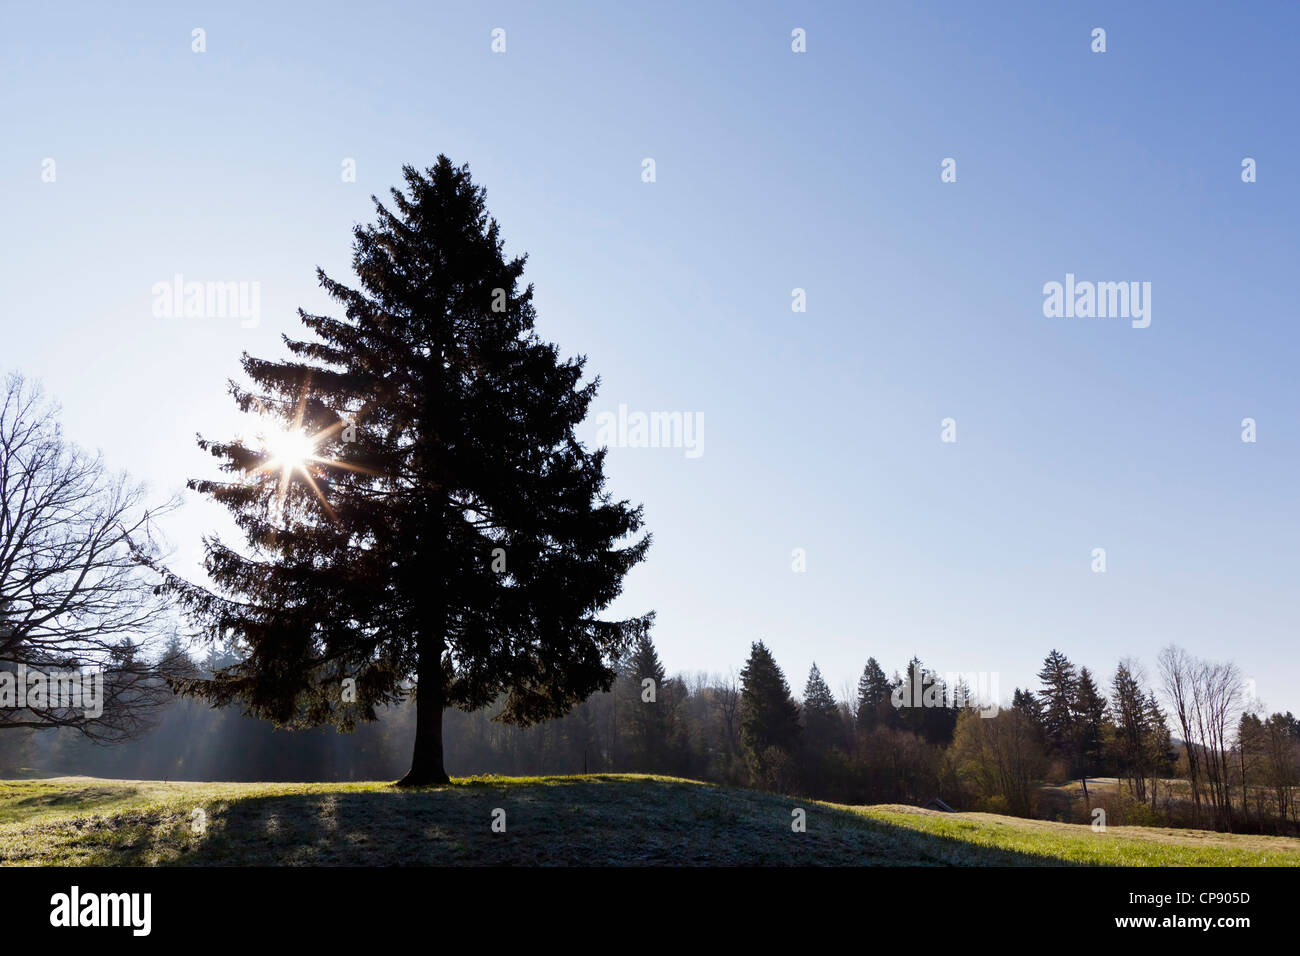 Germany, Bavaria, View of fir tree with sun - Stock Image